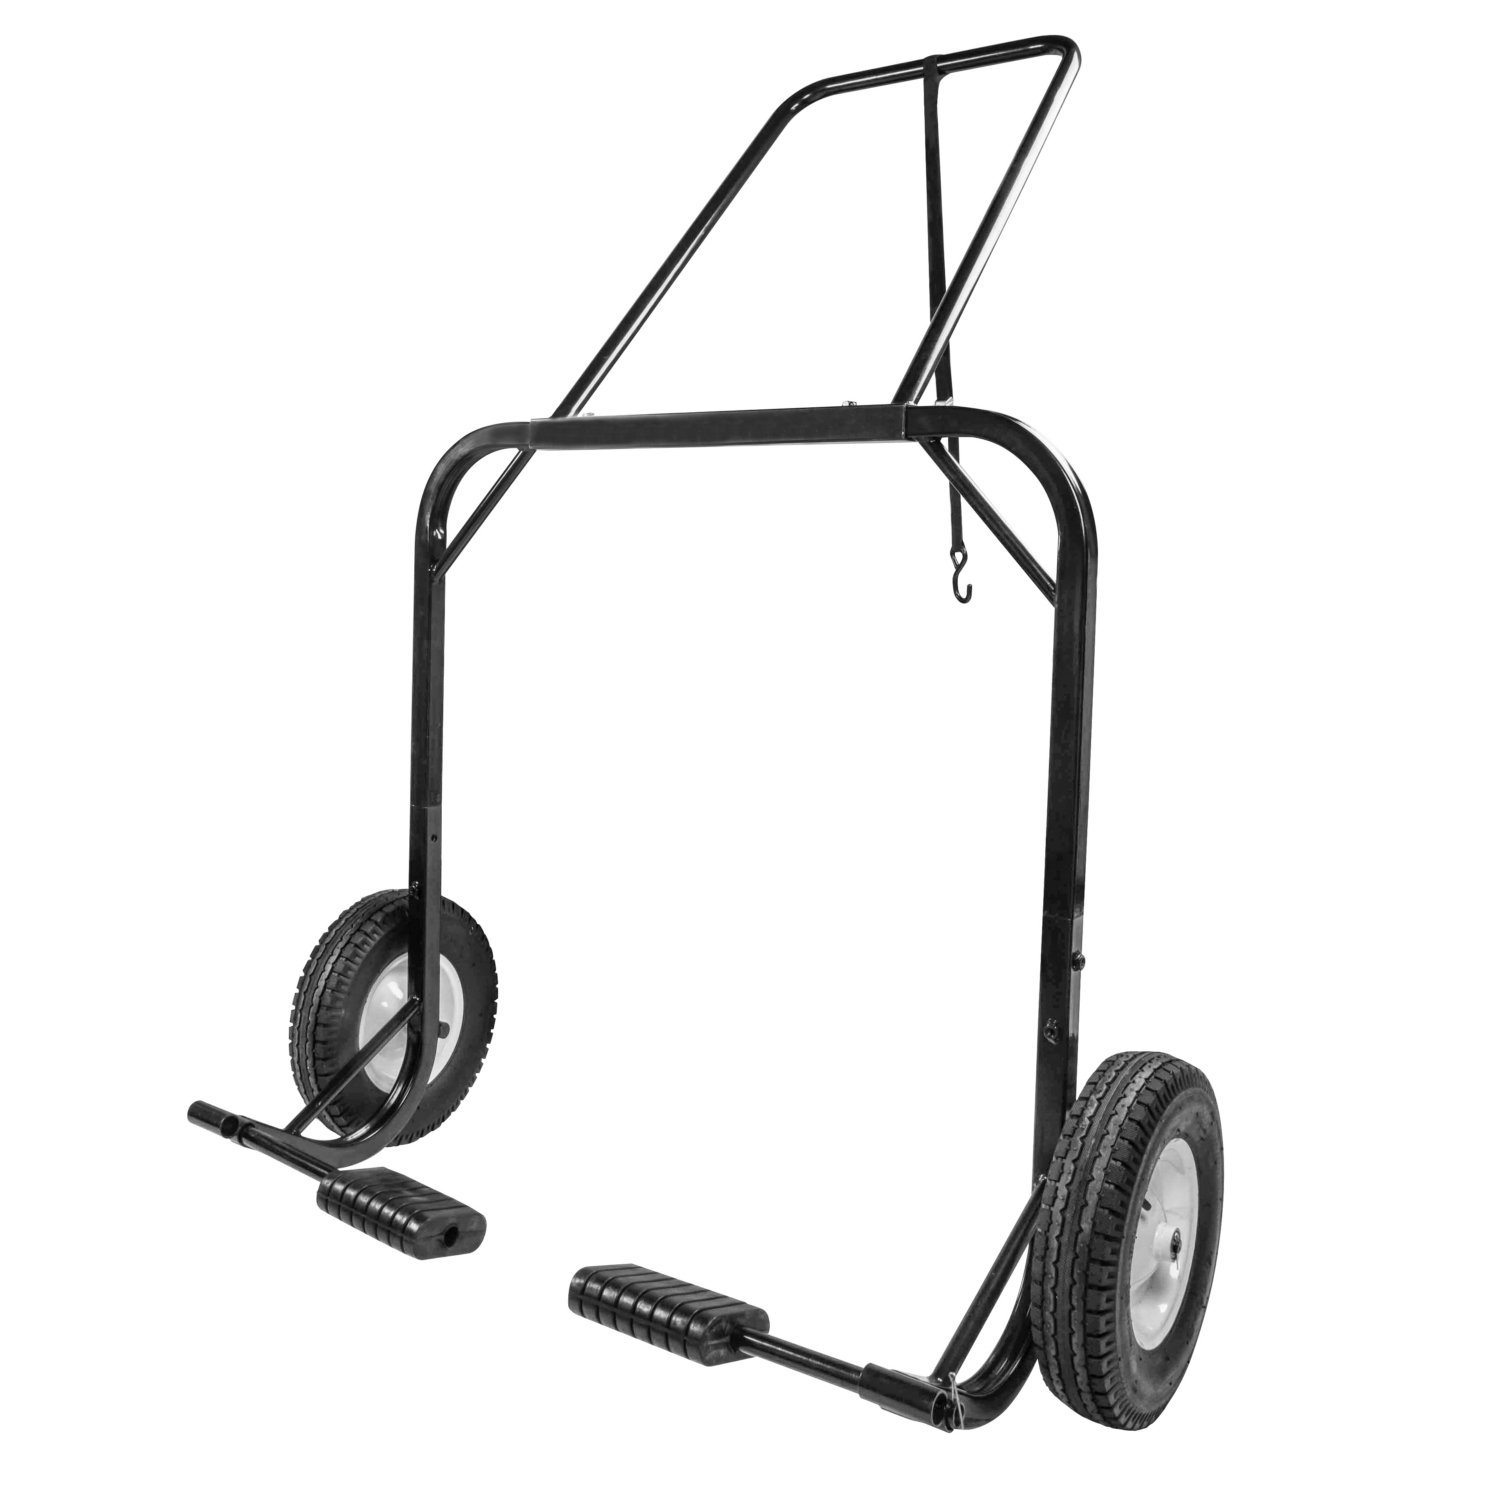 KIMPEX Snowmobile Heavy-Duty X-Pro Shop Dolly